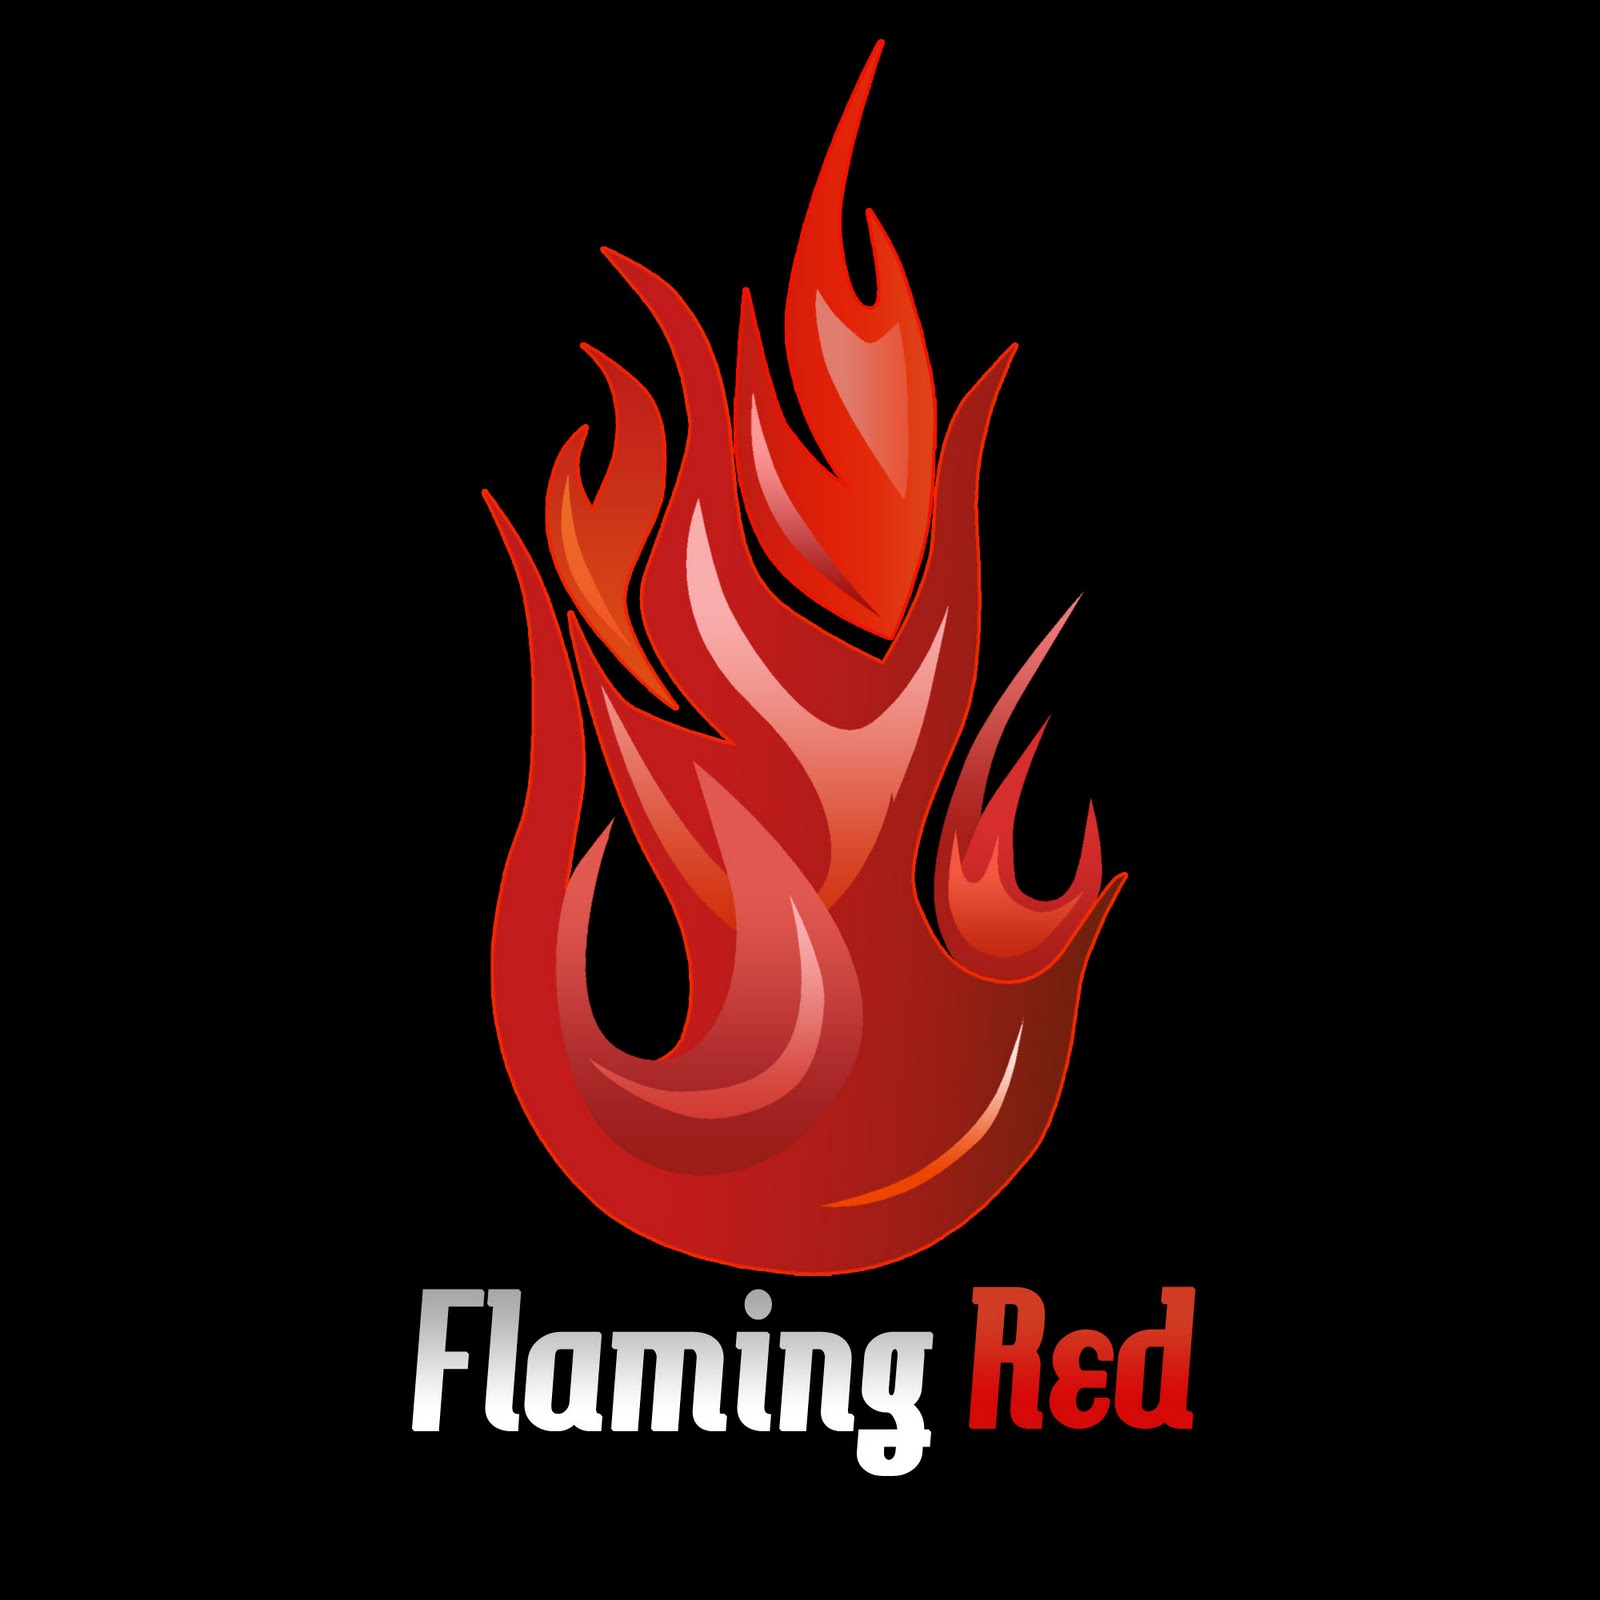 flaming red logo cars red logo wallpaper code red logo 1600x1600